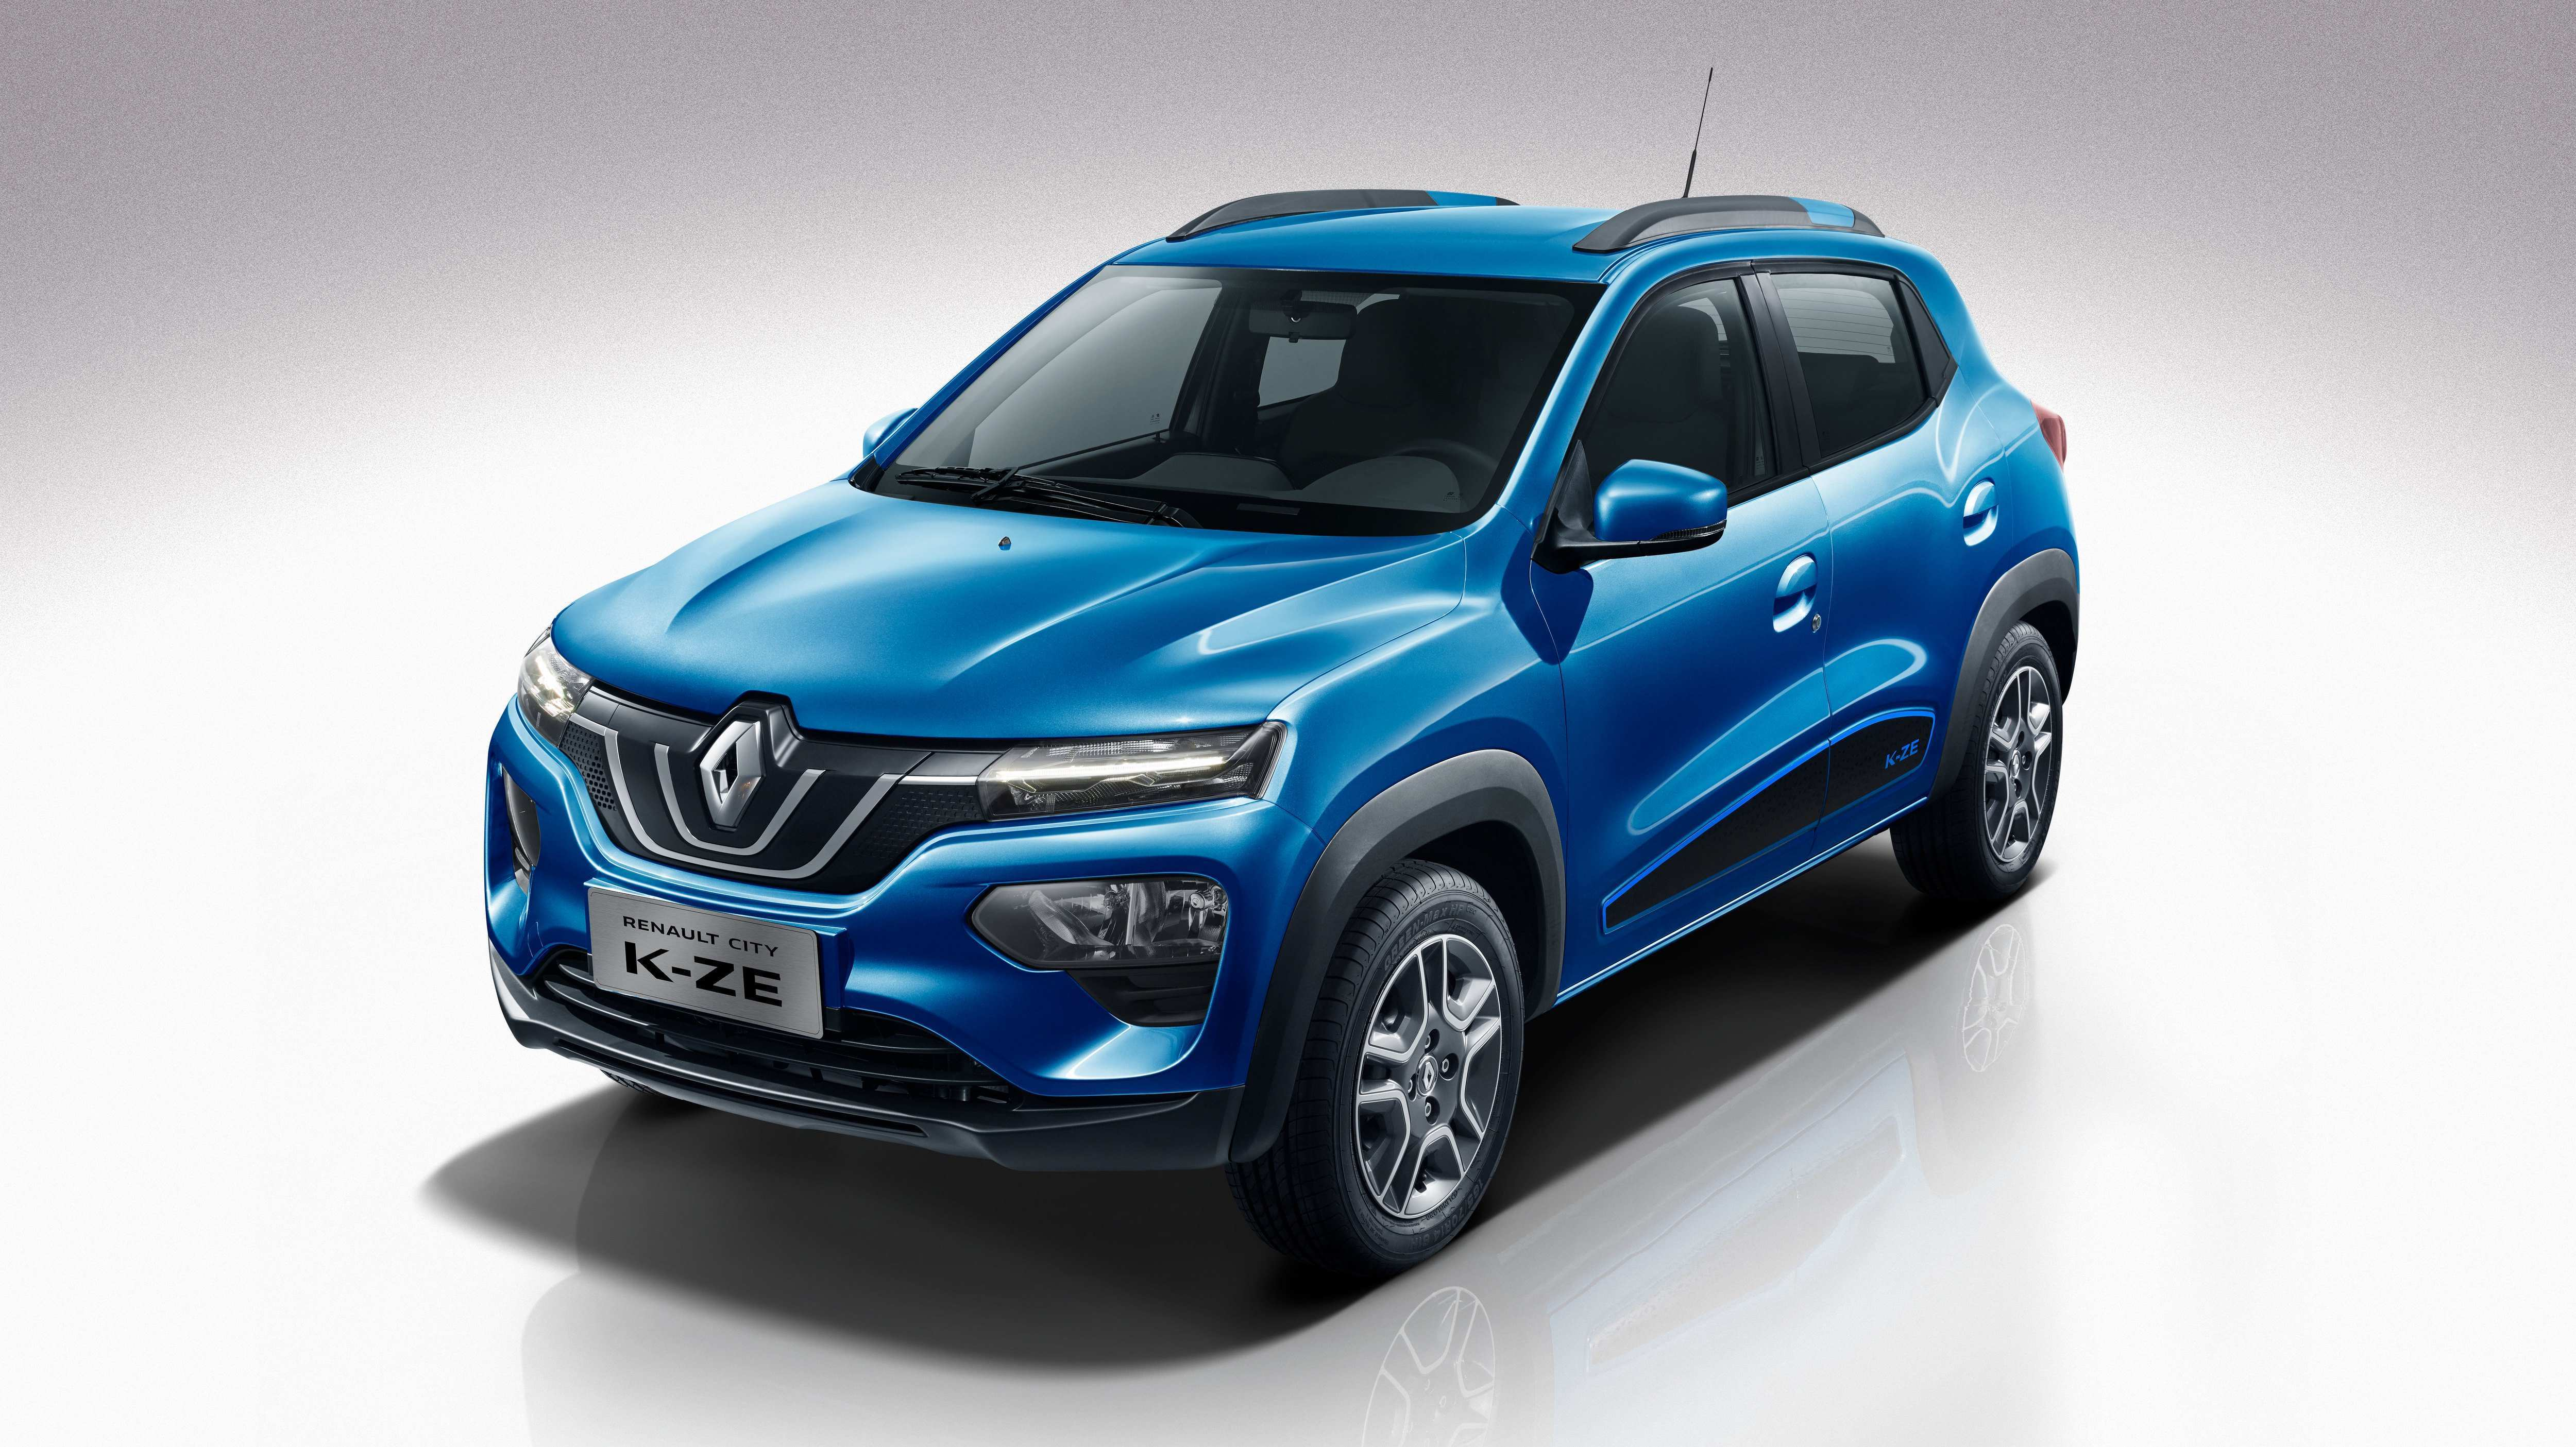 41 New 2020 Renault Kwid Price And Review